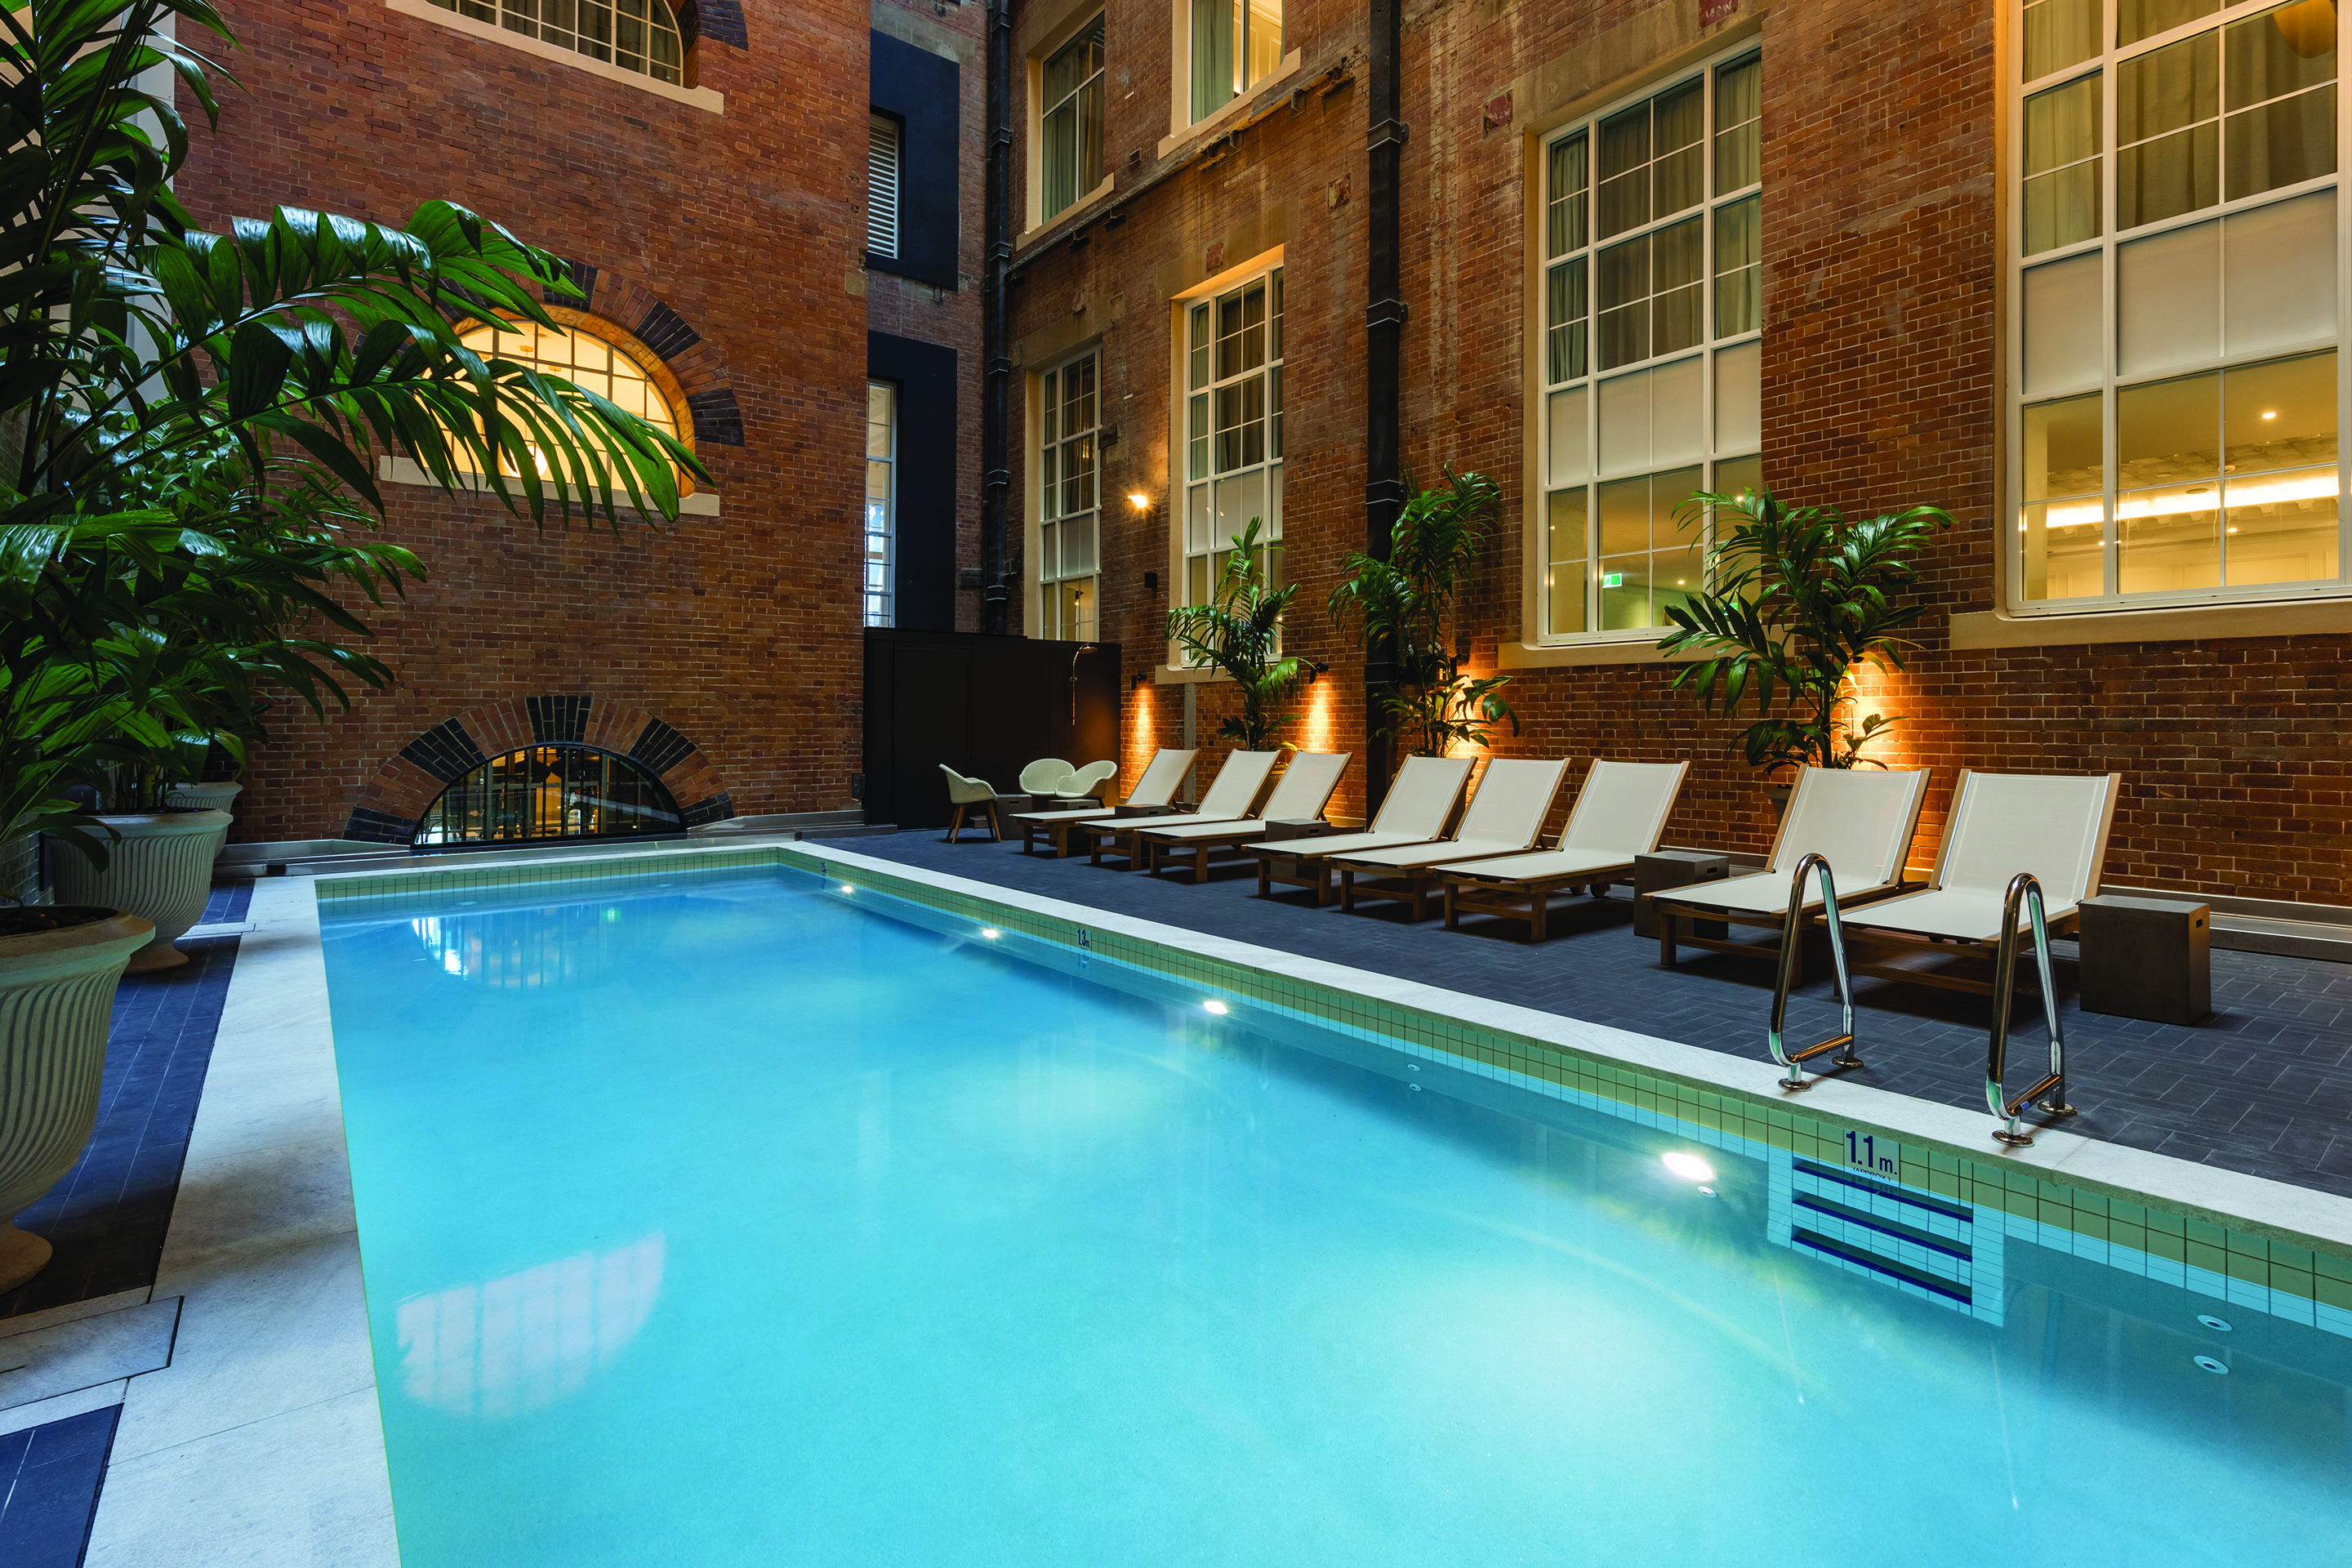 adina-apartment-hotel-brisbane-pool-2018